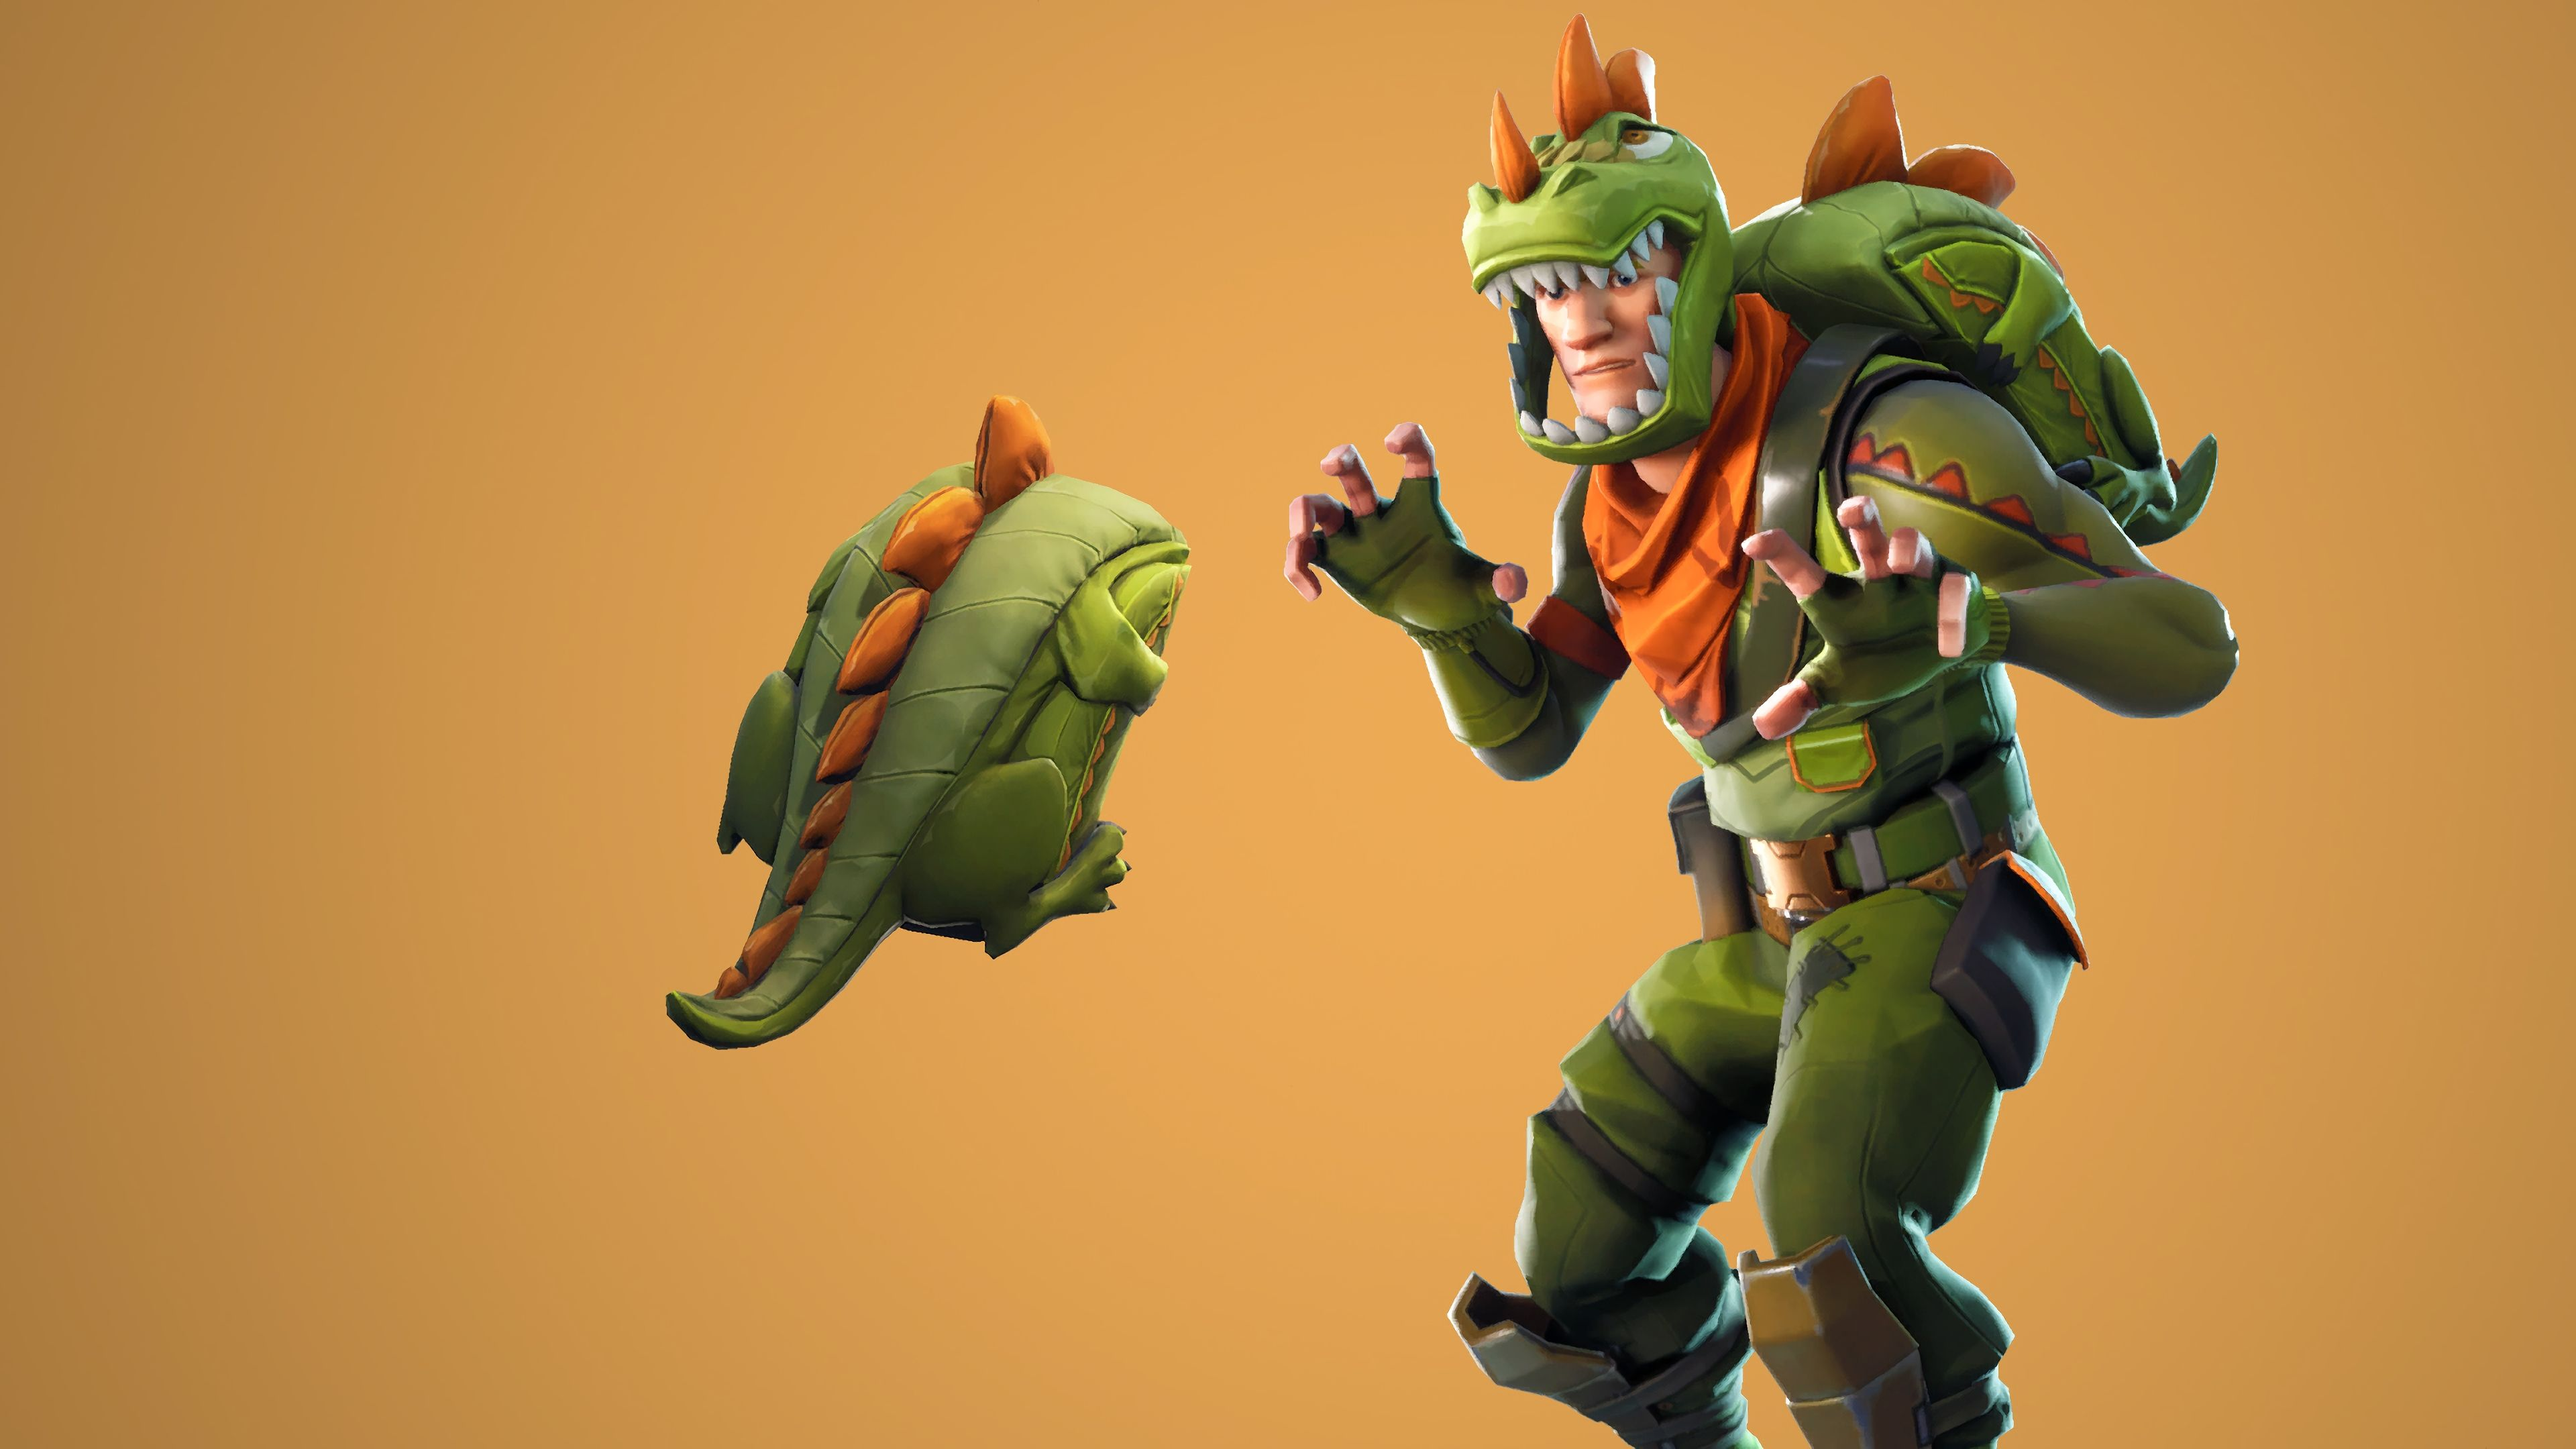 Fortnite Rex Wallpapers Top Free Fortnite Rex Backgrounds